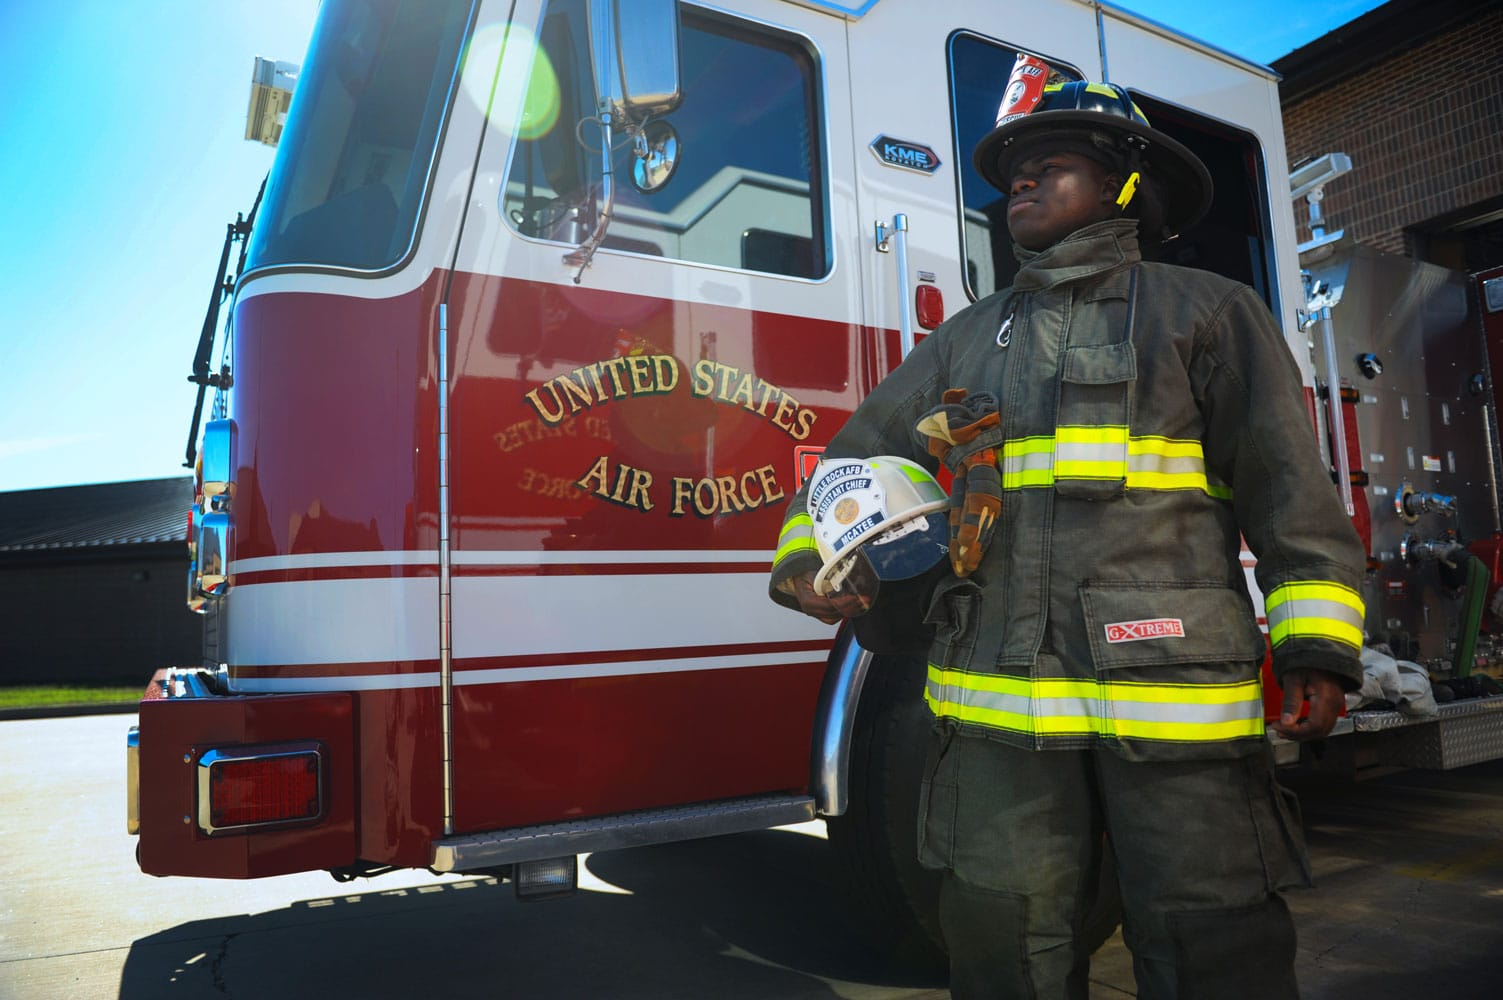 United States Air Force Firefighters: The 19th Civil Engineer Squadron Fire Department is composed of both military and civilian personnel that work as one team to protect life, property and environment within the boundaries of the Air Force installation.